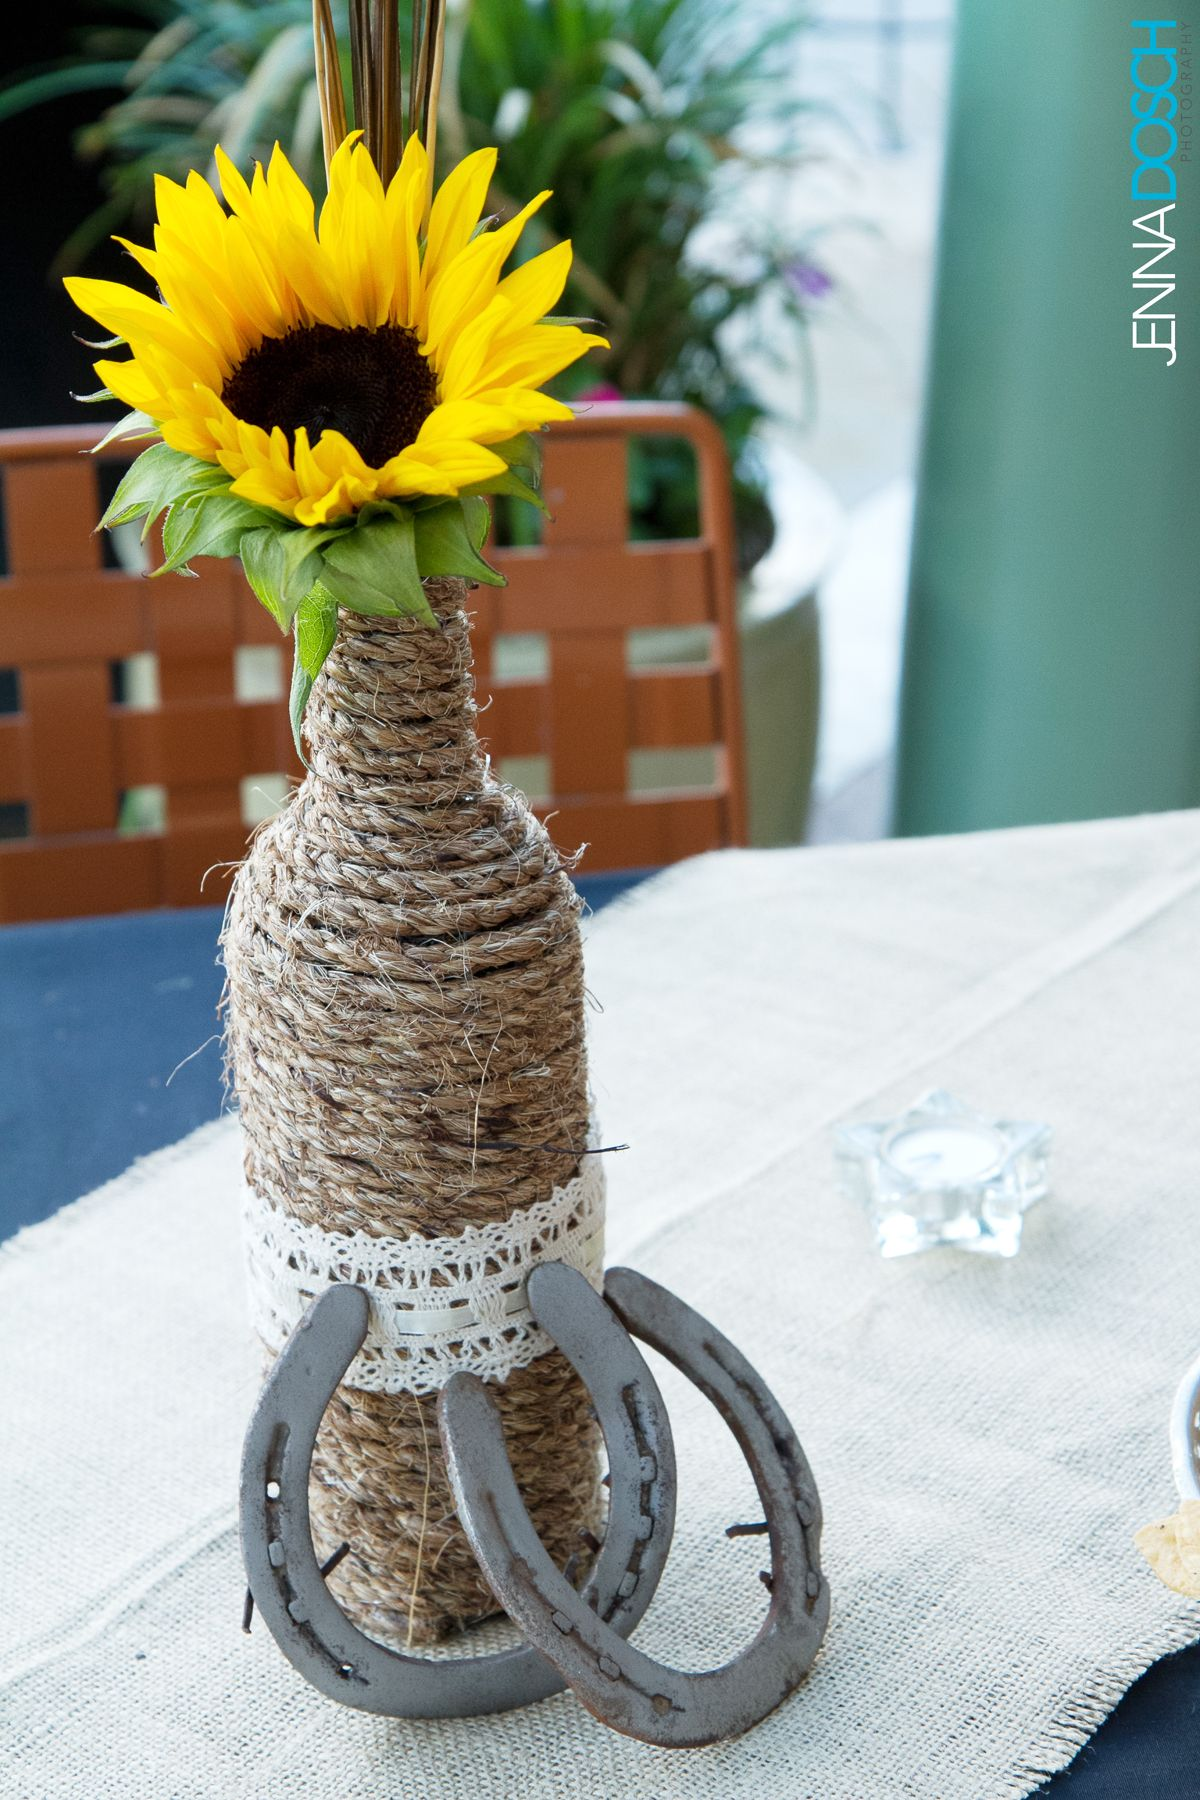 Country Centerpiece Xda : Creative floral designs with sunflowers sunny summer